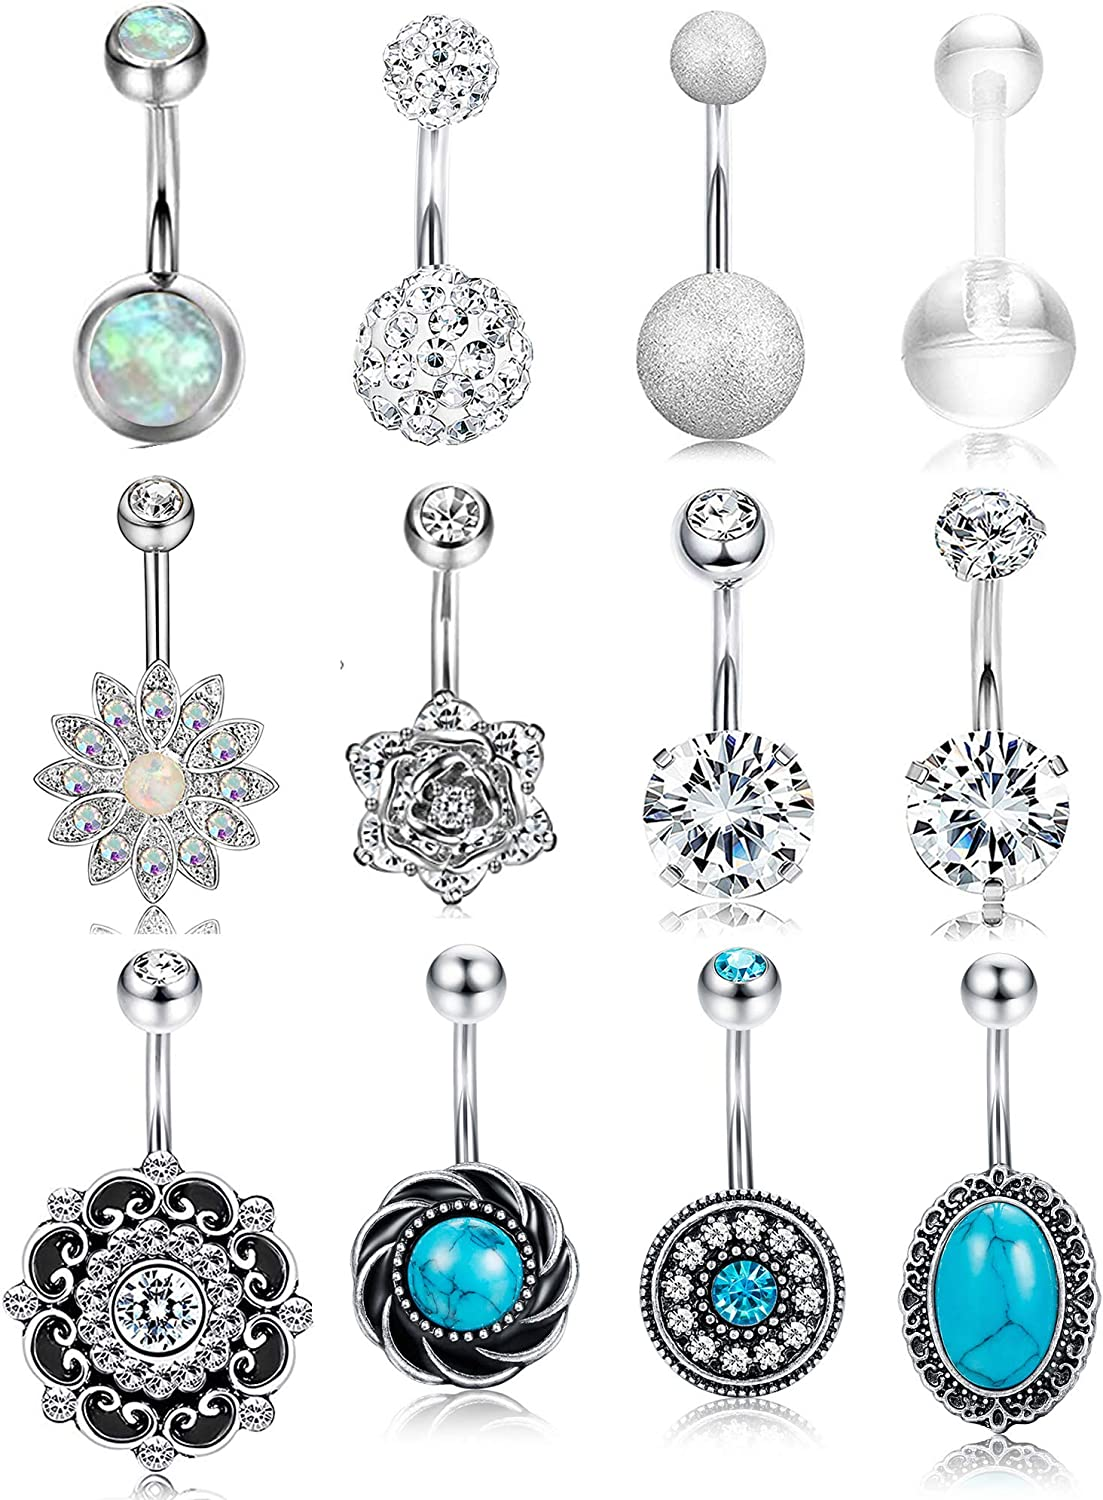 Belly barbell Belly button piercing Belly button rings surgical steel Belly ring Belly piercing 8mm Navel ring Belly button ring short